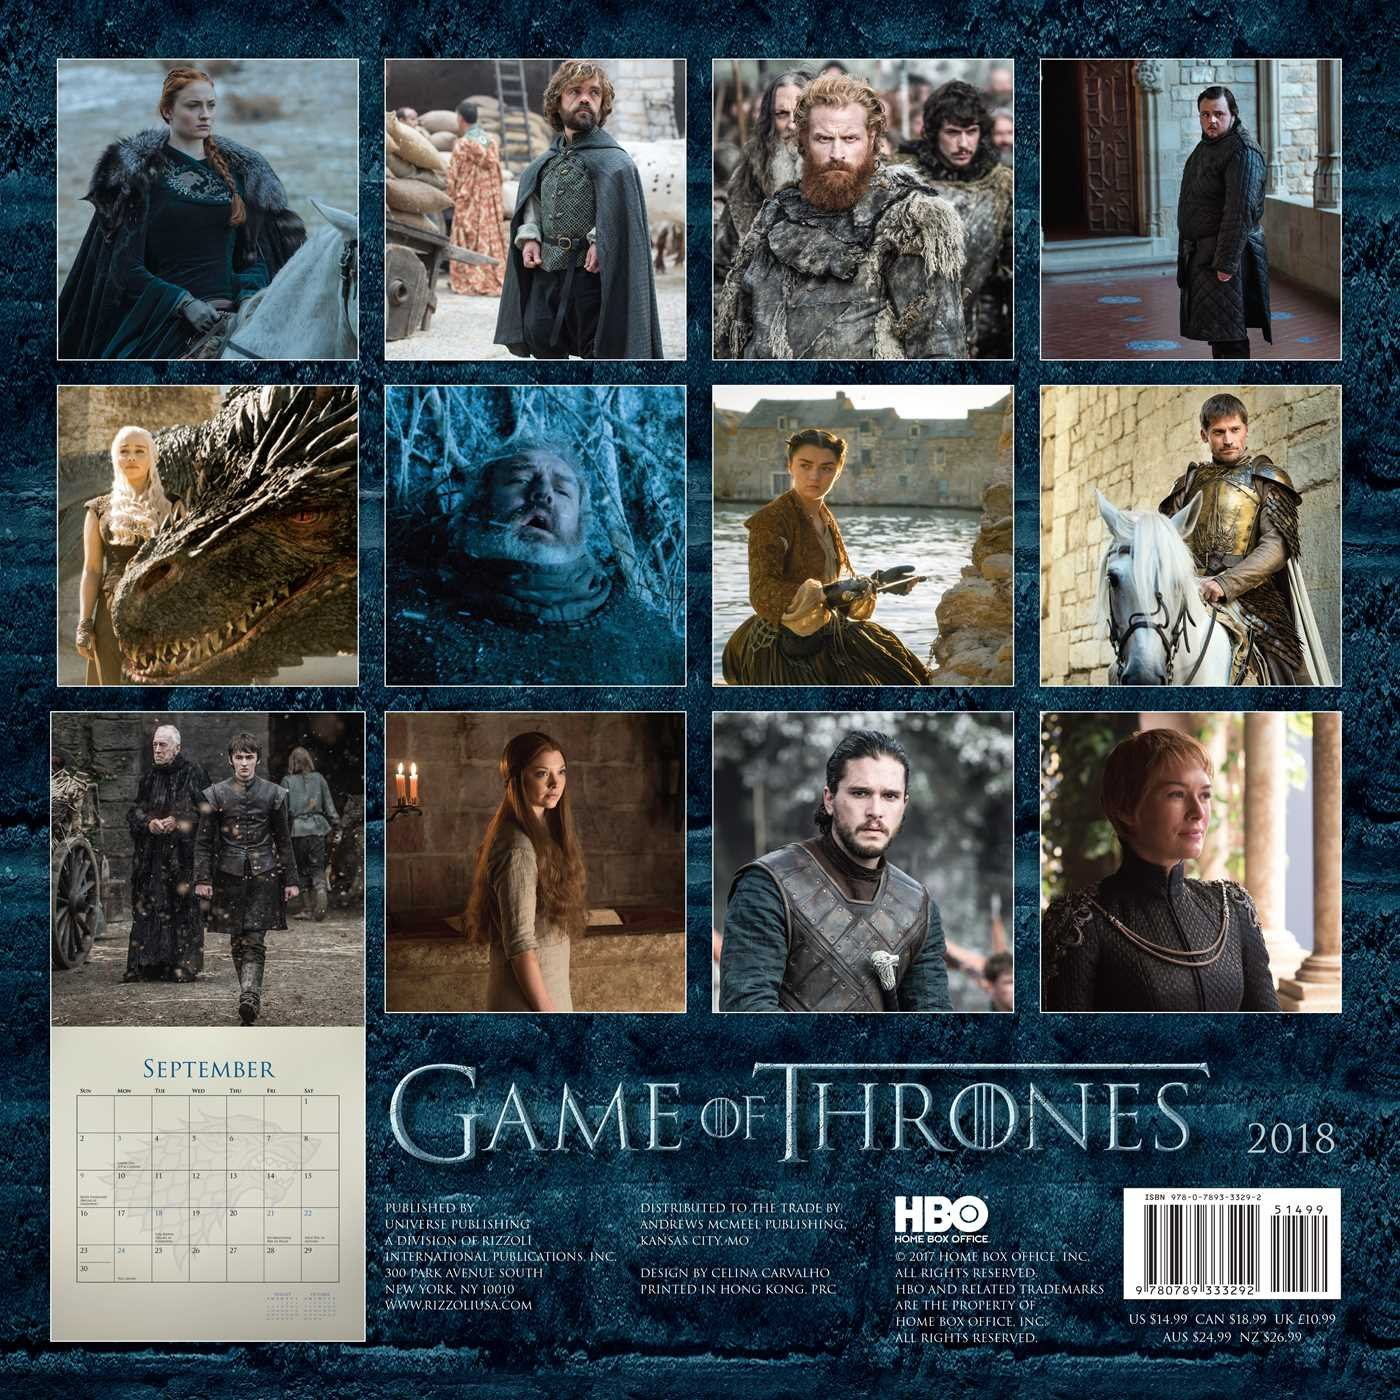 Buy Game of Thrones 2018 Wall Calendar Book Online at Low Prices